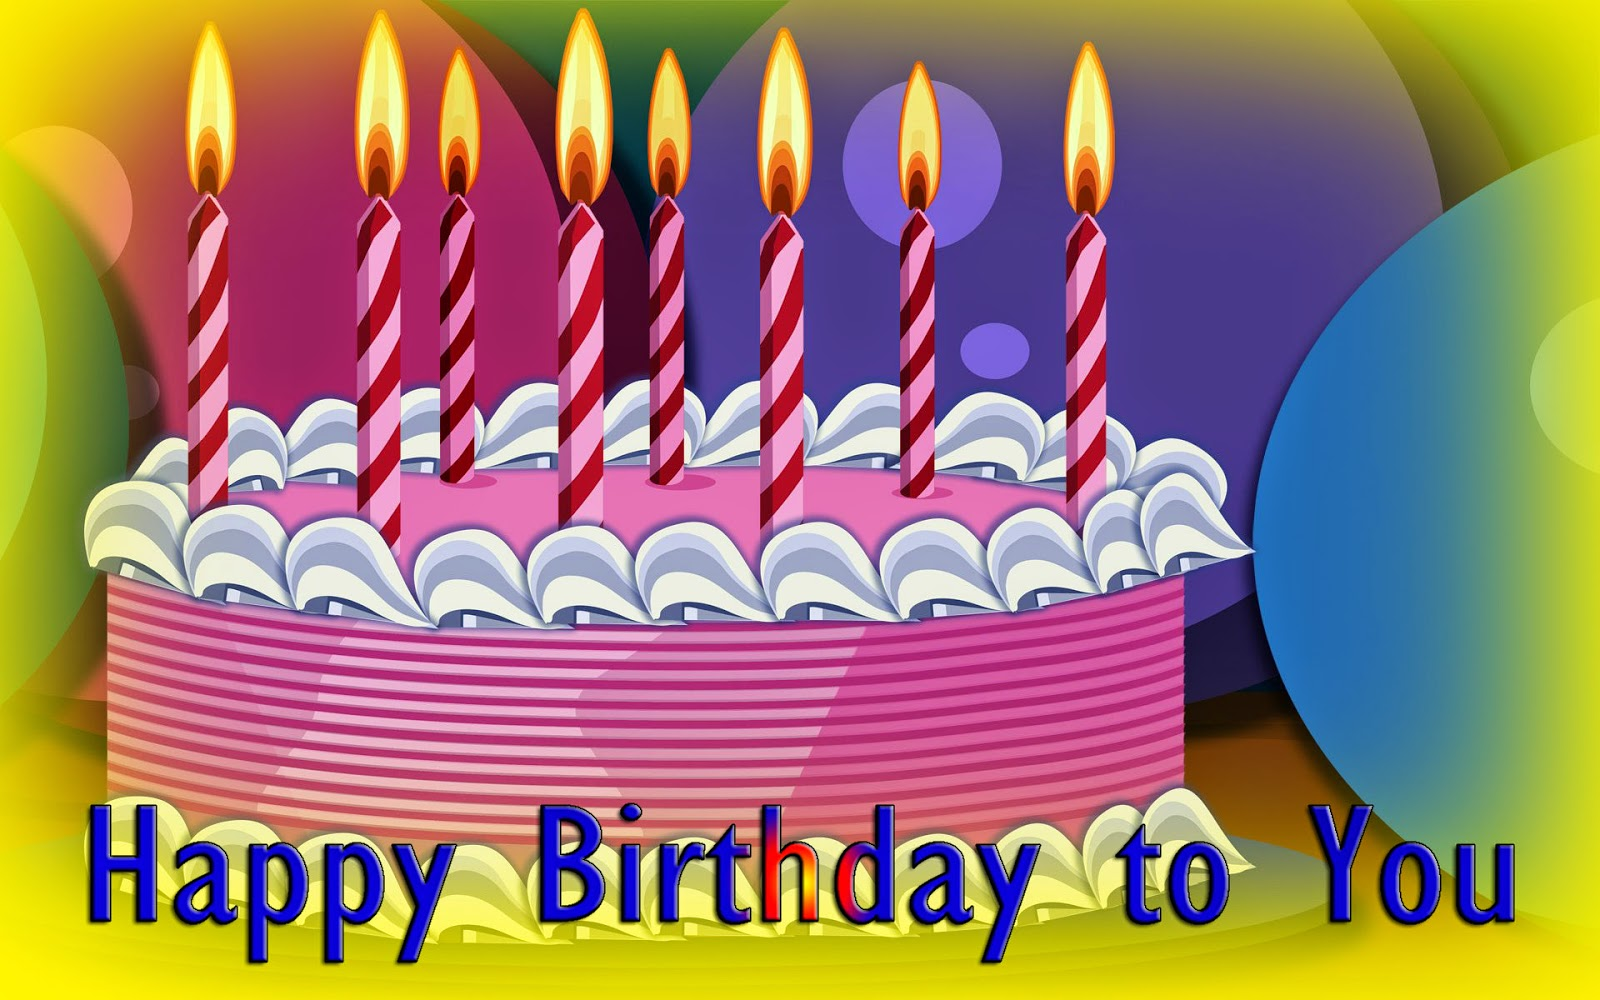 Birthday wishes video for whatsapp boory happy birthday greetings for whatsapp happy birthday wishes m4hsunfo